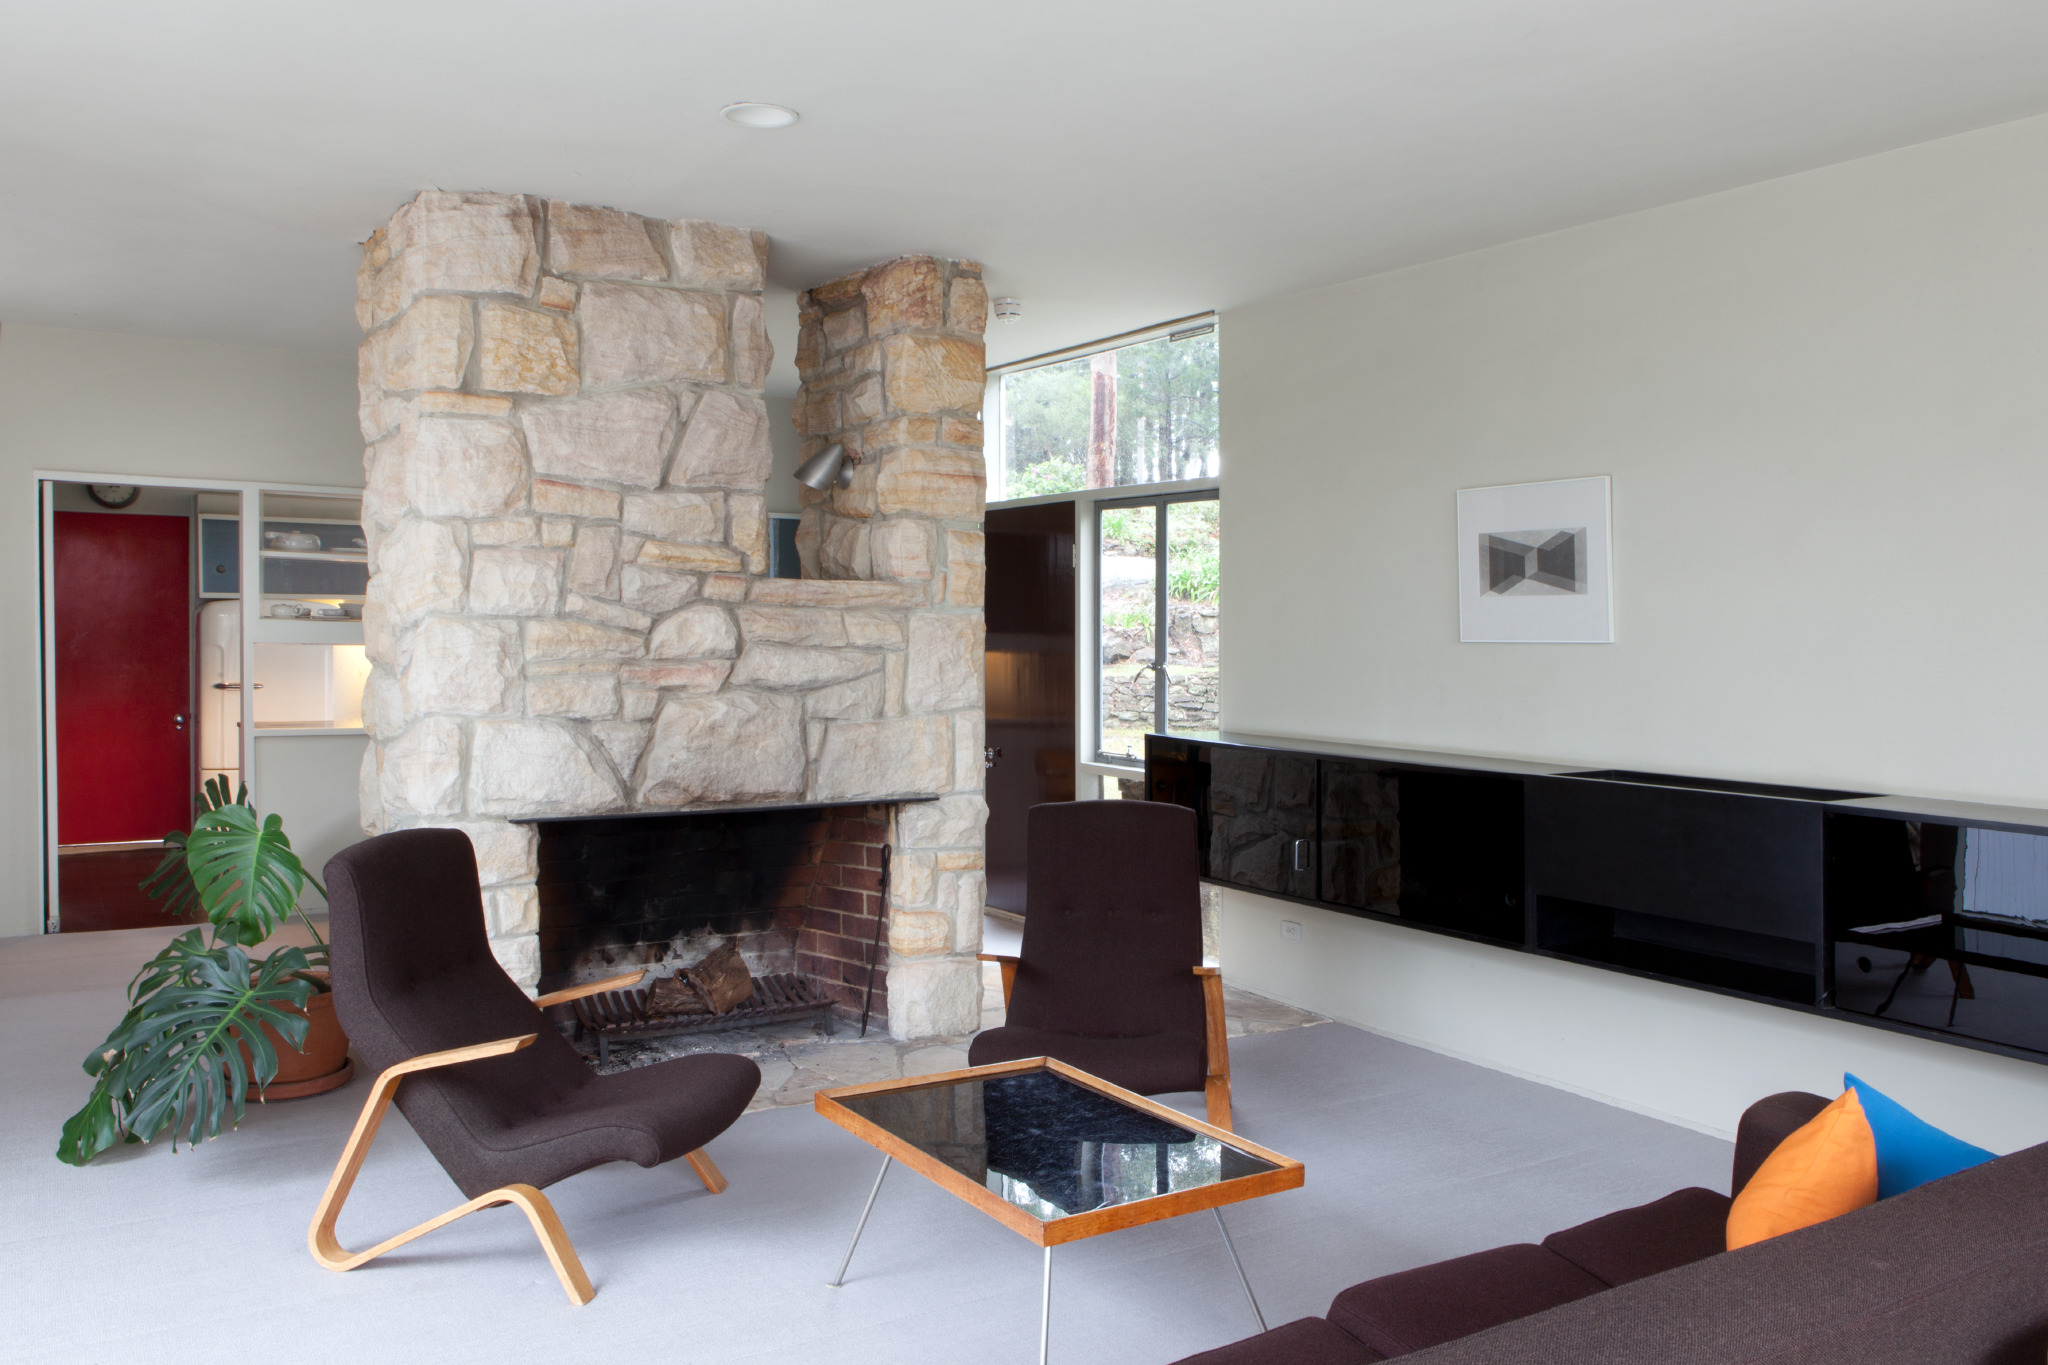 The open plan lounge room featuring the central fireplace and dining area behind. Photograph copyright Jamie North for Sydney Living Museums.